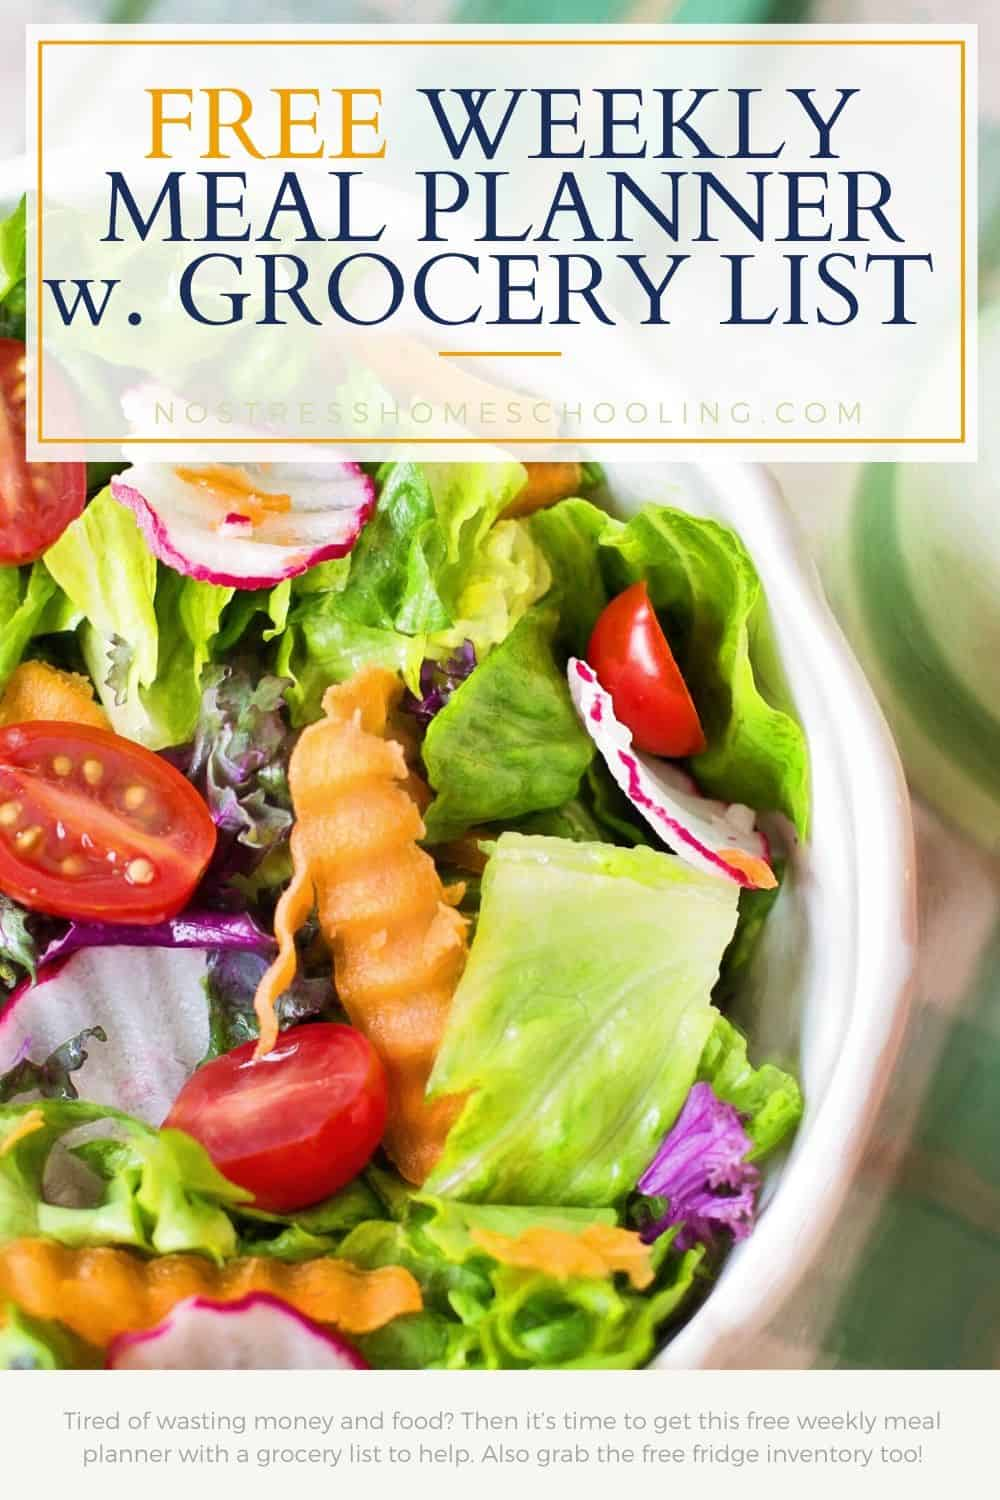 Tired of wasting money and food? Then it's time to get this free weekly meal planner with a grocery list to help. Also grab the free fridge inventory too!